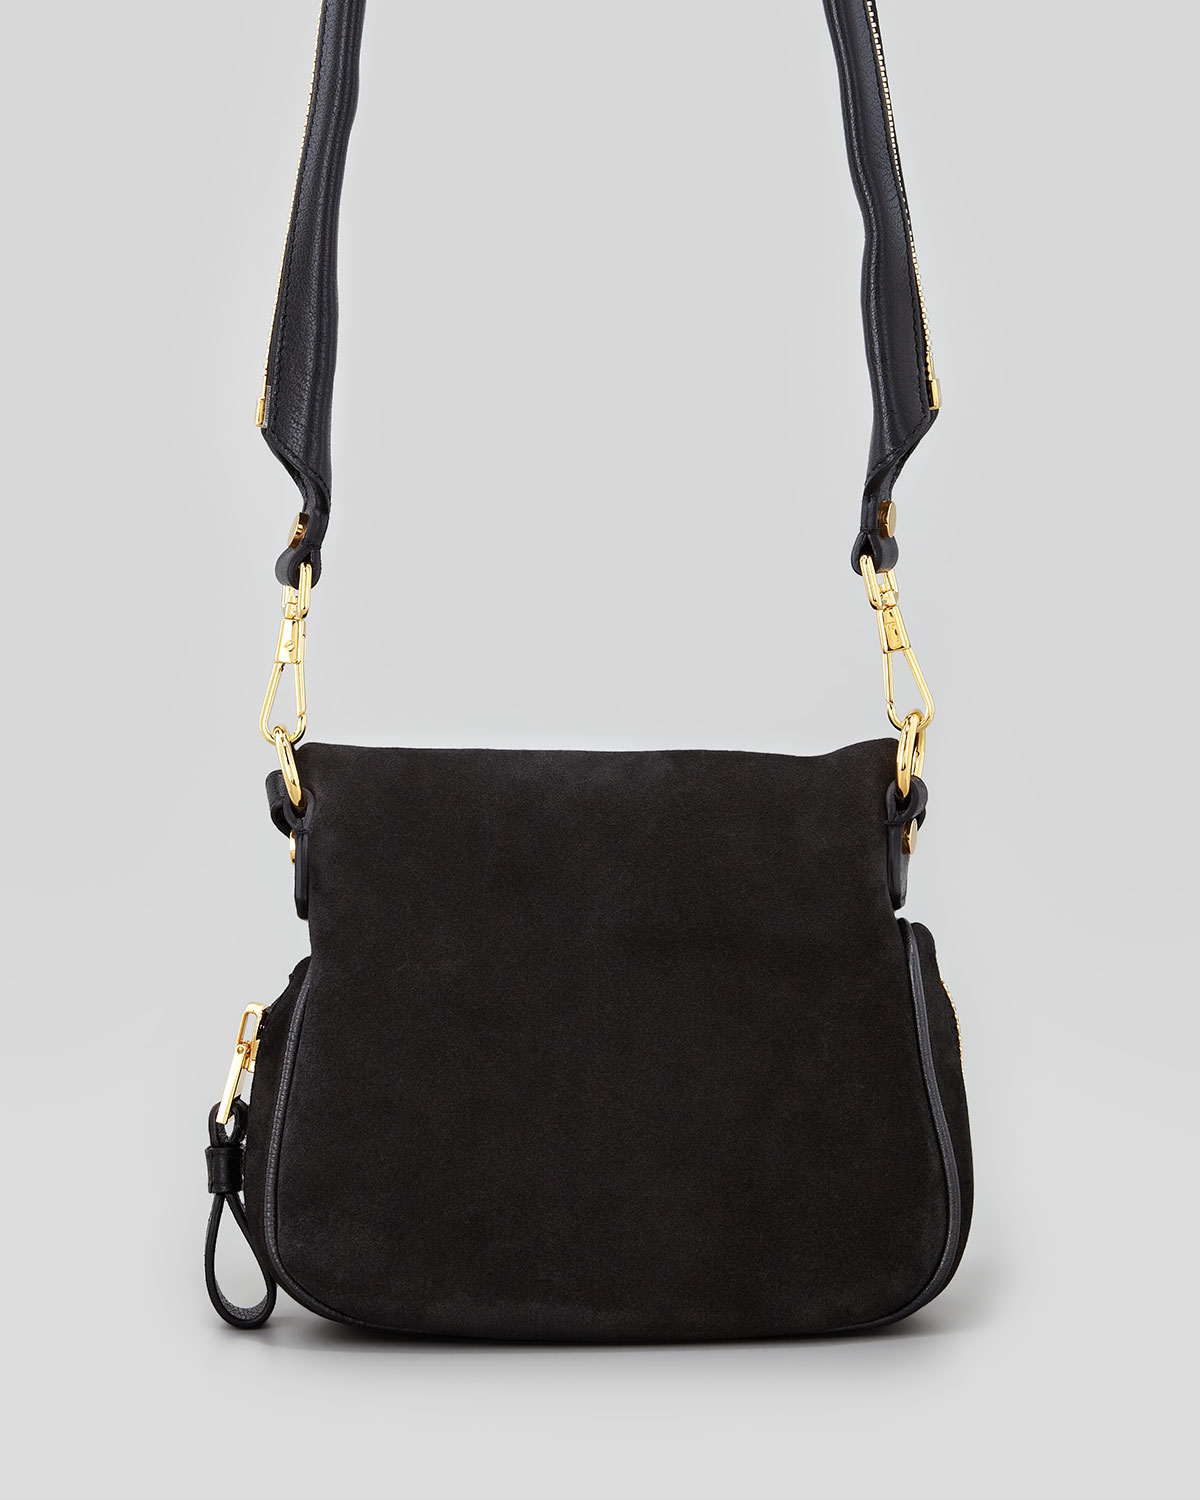 2761fac2ae Lyst - Tom Ford Jennifer Suede Mini Crossbody Bag Black in Black